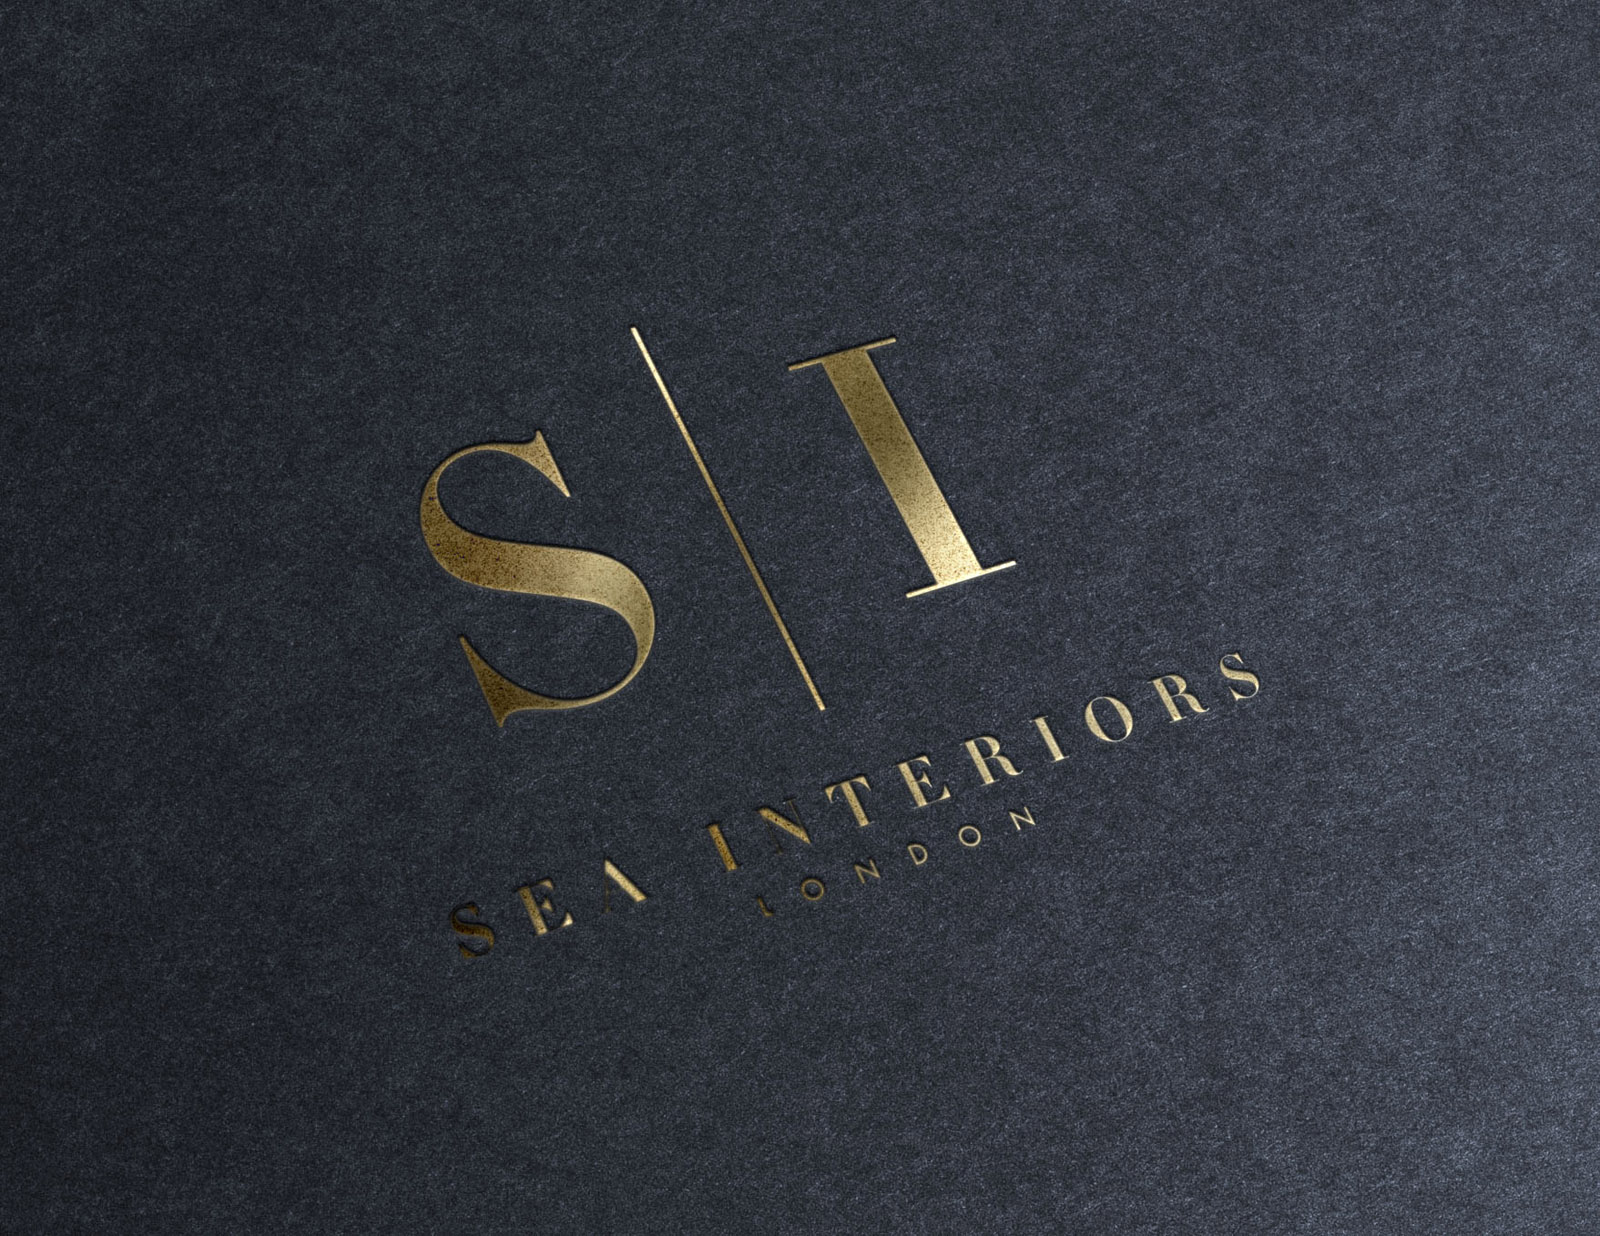 interior-designer-logo-branding-london01